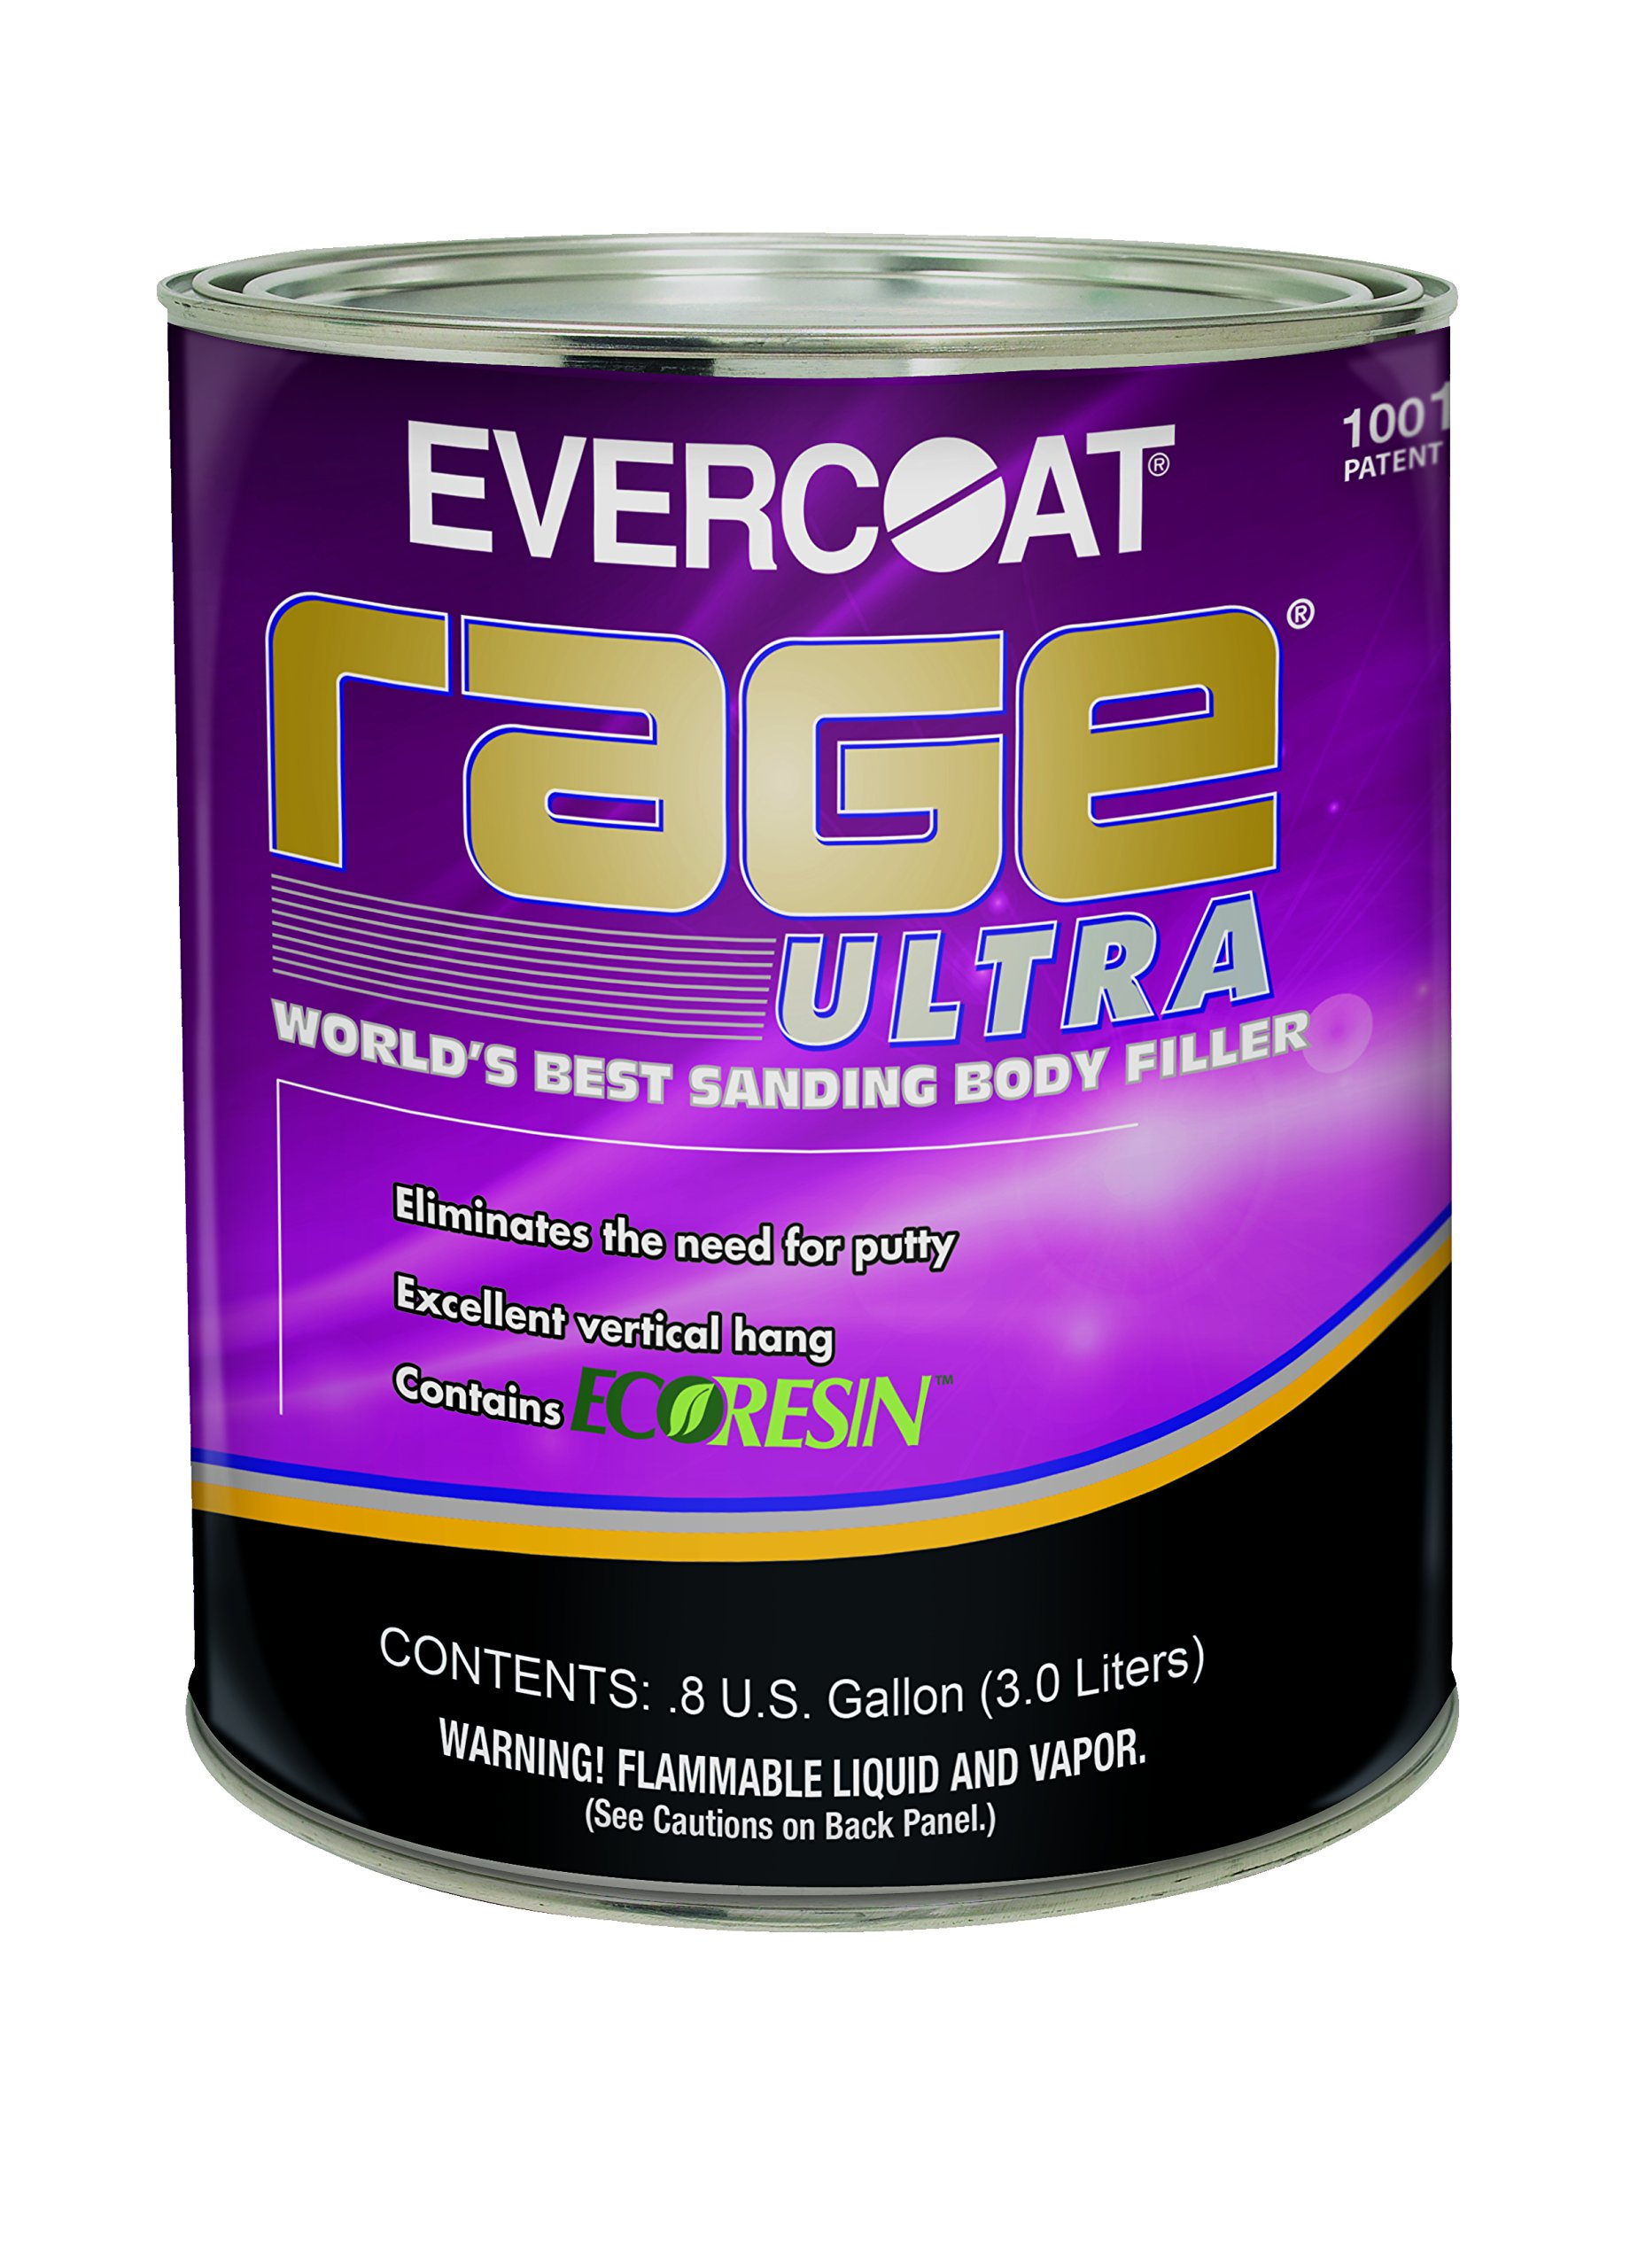 Evercoat 125 Rage Ultra Body Filler - 0.8 Gallon by Evercoat (Image #1)